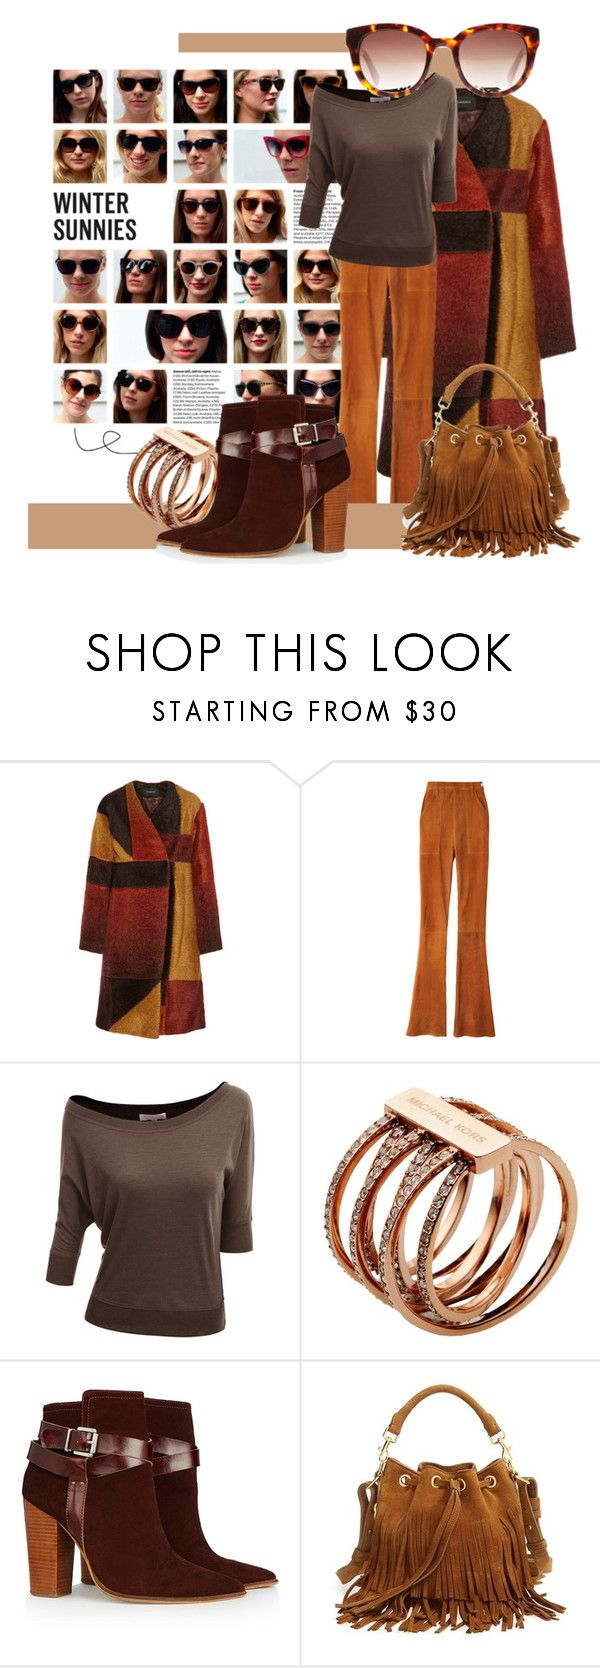 """Winter sunnies"" by beautifulgirlsblog on Polyvore featuring Thakoon, Frame Denim, Doublju, Michael Kors, Warehouse, Yves Saint Laurent and wintersunnies"